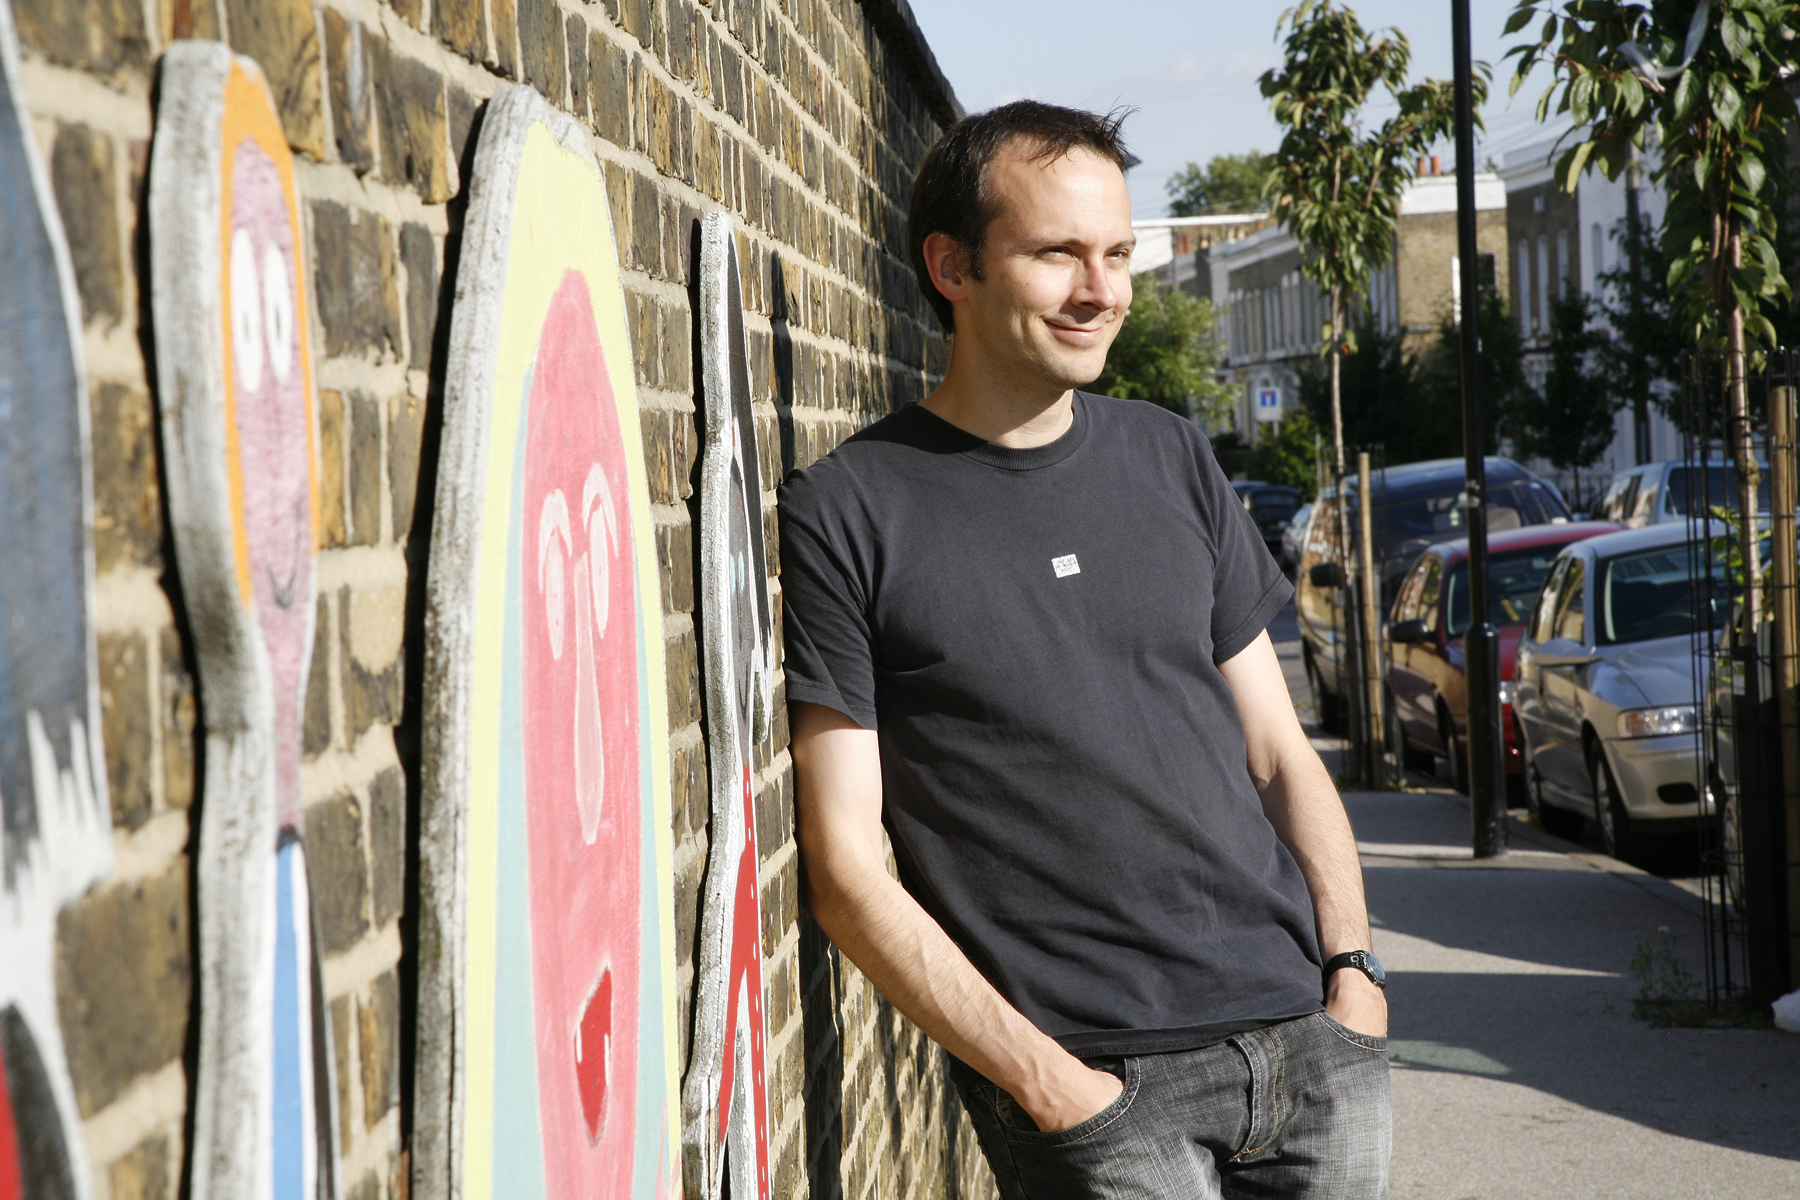 Tim Harford in black t-shirt and jeans, leaning against a wall with murals